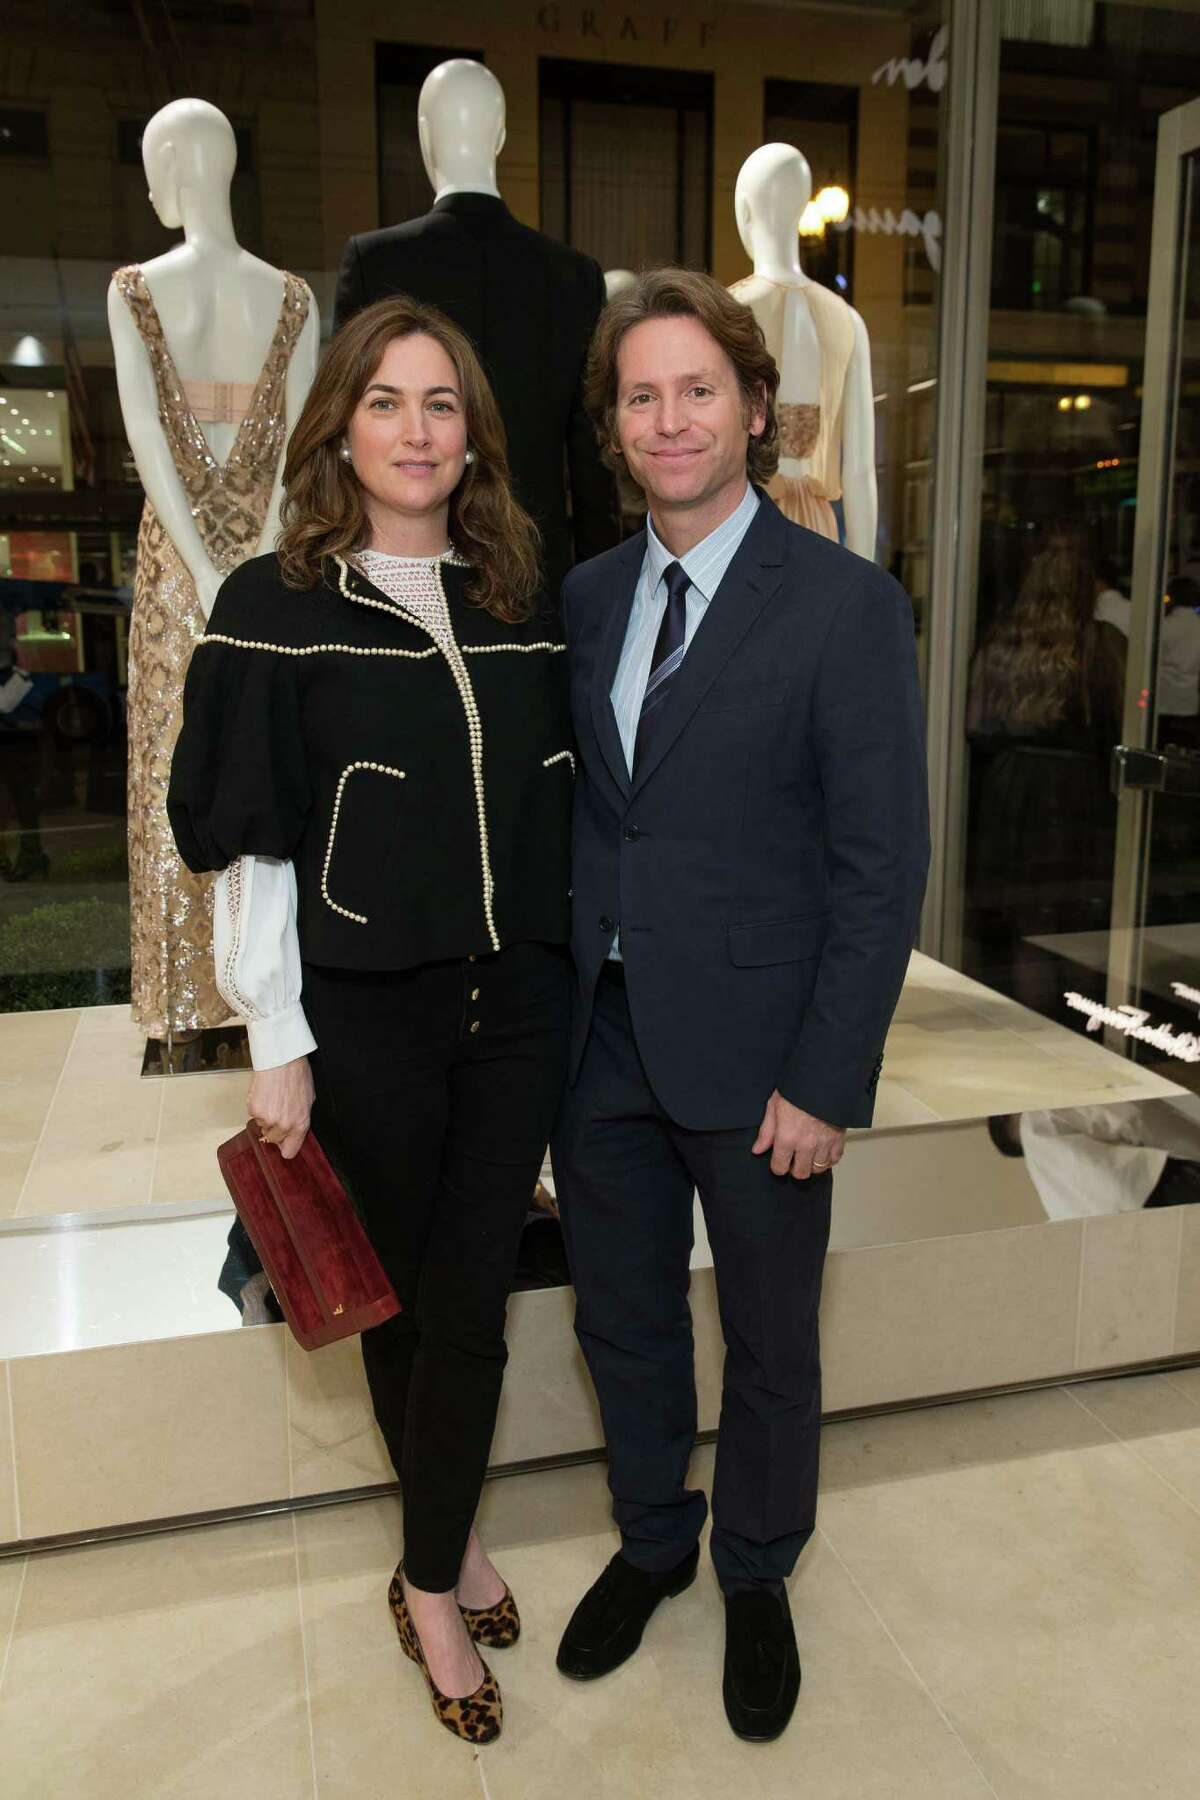 Alexis Traina and Trevor Traina at the opening cocktail reception of the newly relocated Salvatore Ferragamo boutique in S.F. on January 23, 2014.